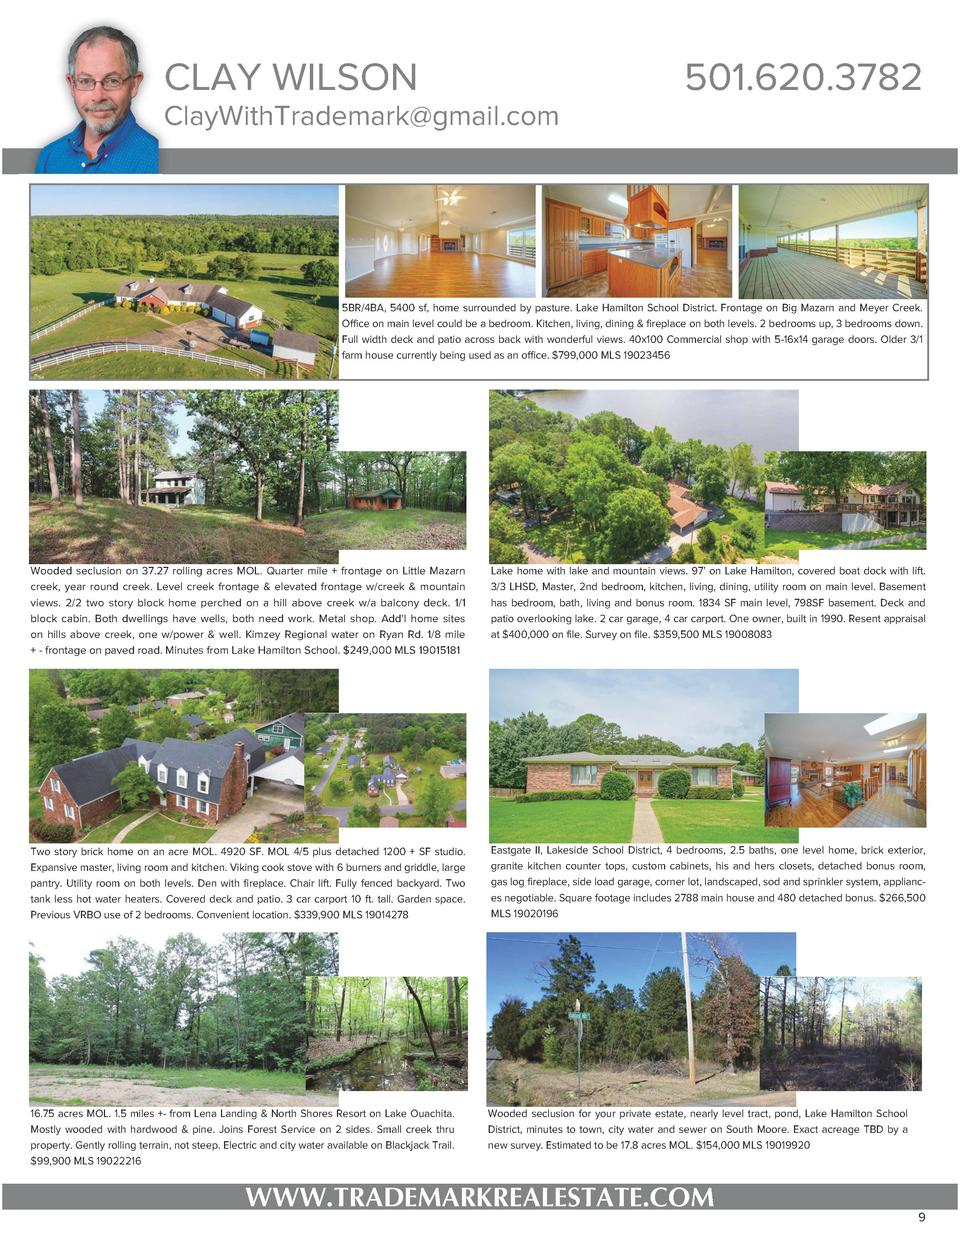 CLAY WILSON  ClayWithTrademark gmail.com  501.620.3782  5BR 4BA, 5400 sf, home surrounded by pasture. Lake Hamilton School...